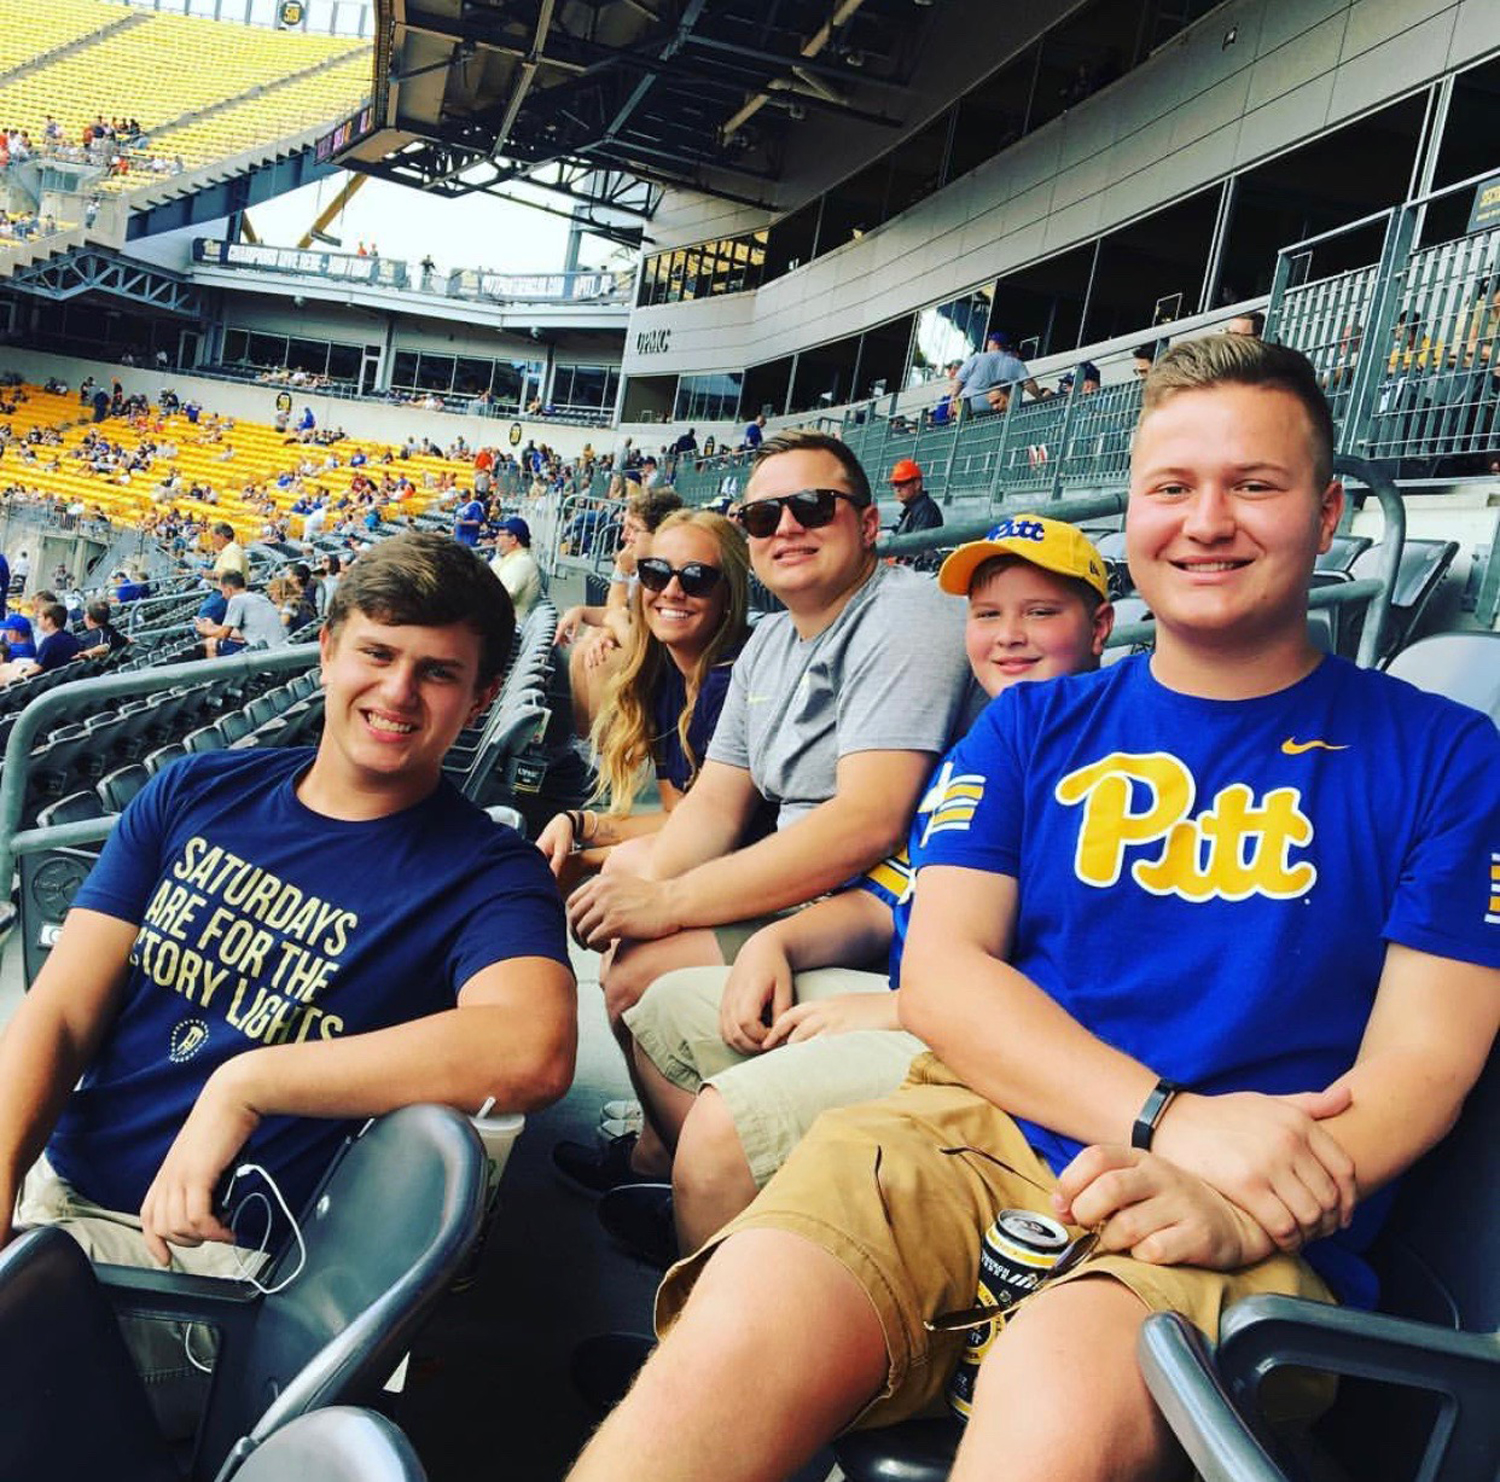 (From left to right) Pierce, Joel's girlfriend Kati Fischer, Joel, Reese and Gavin Yahner sit in the stands at Heinz Field.